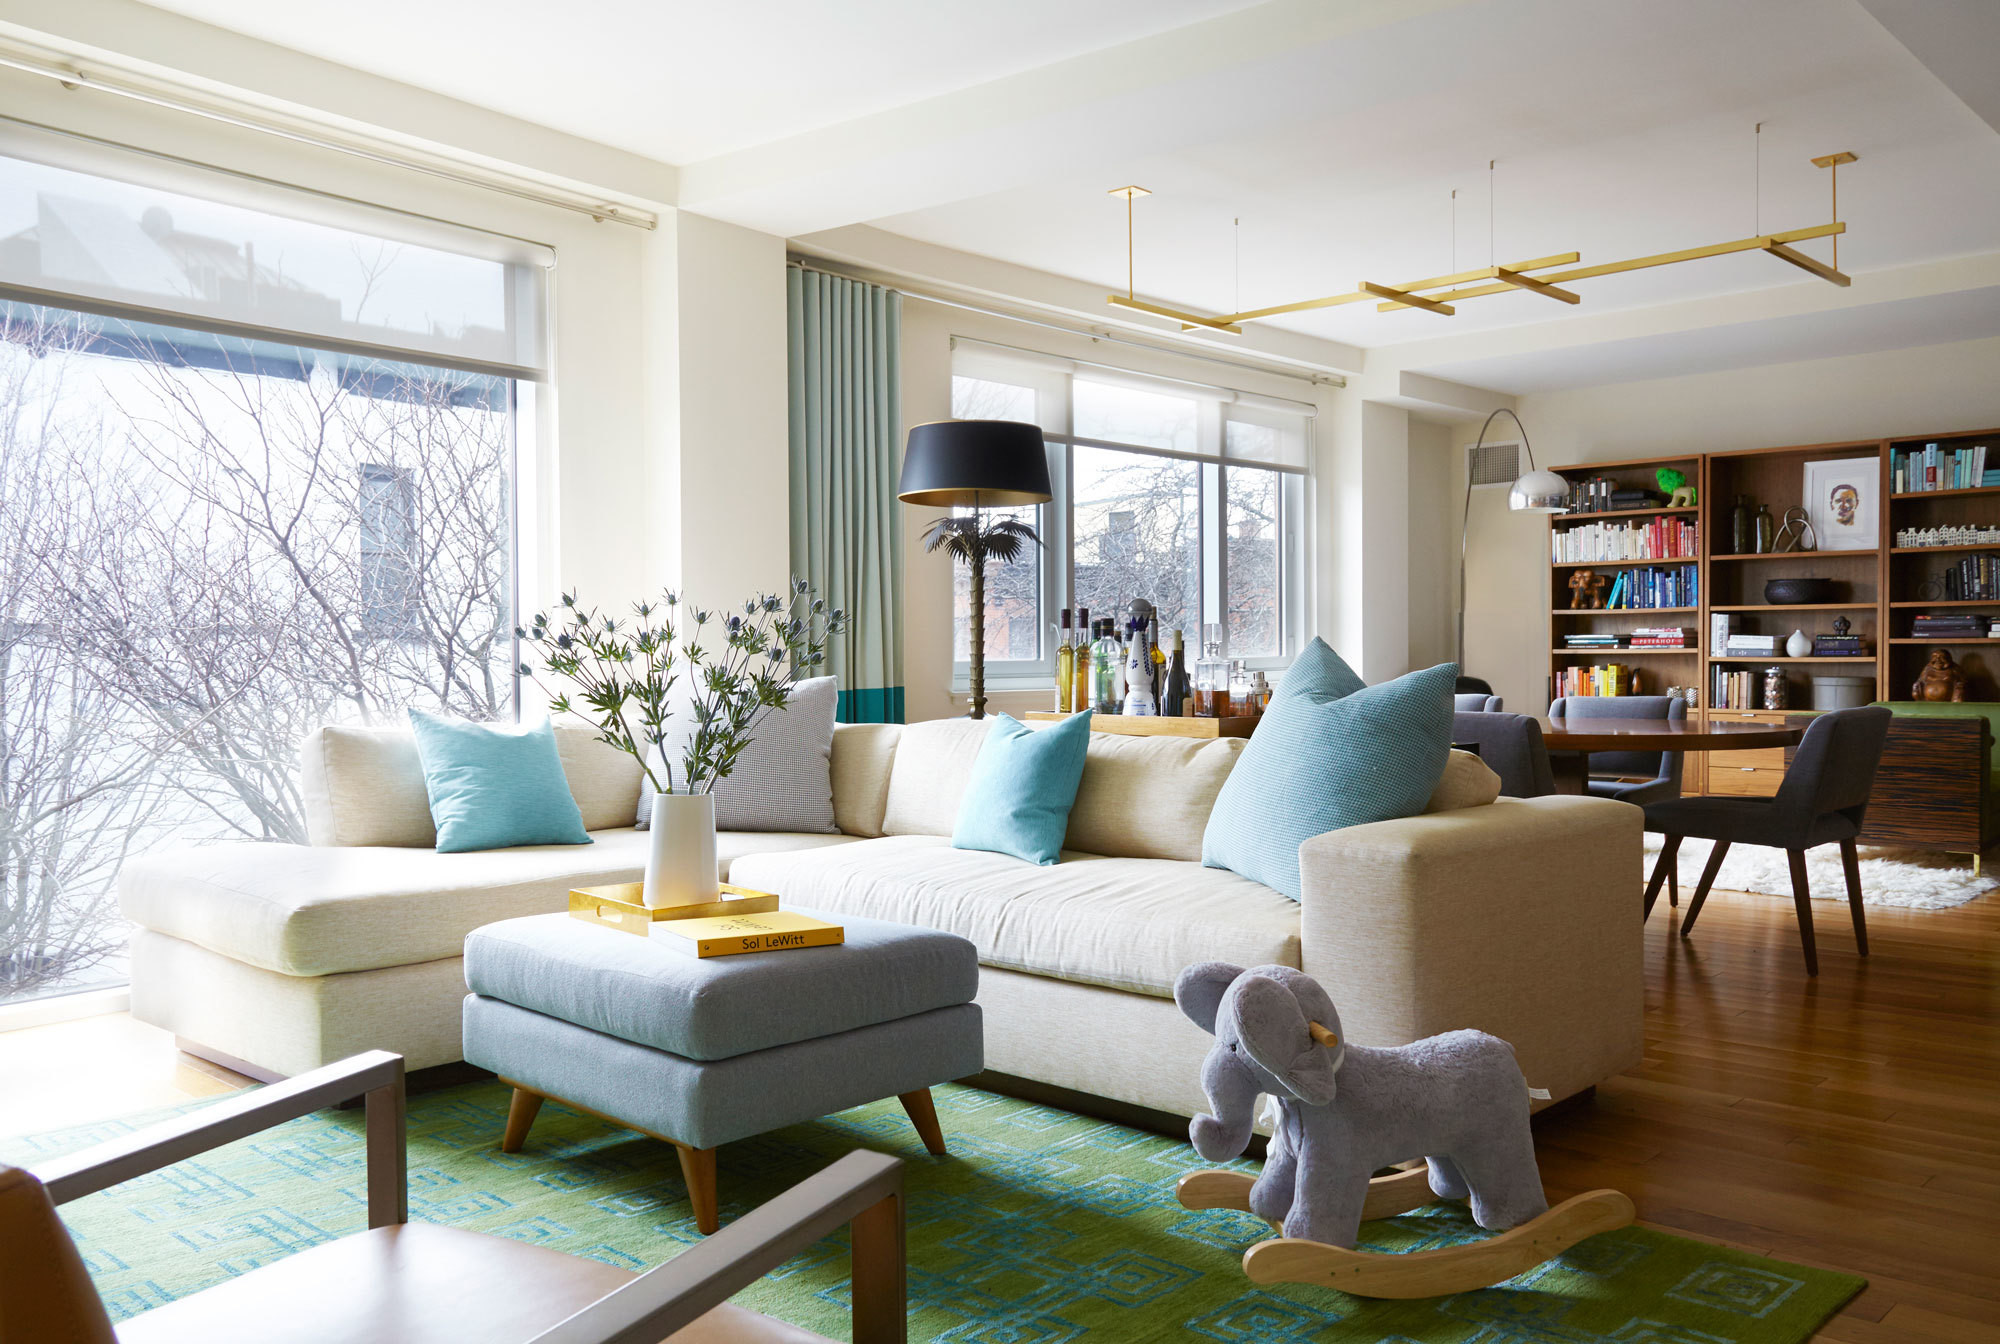 ID 810 Design Group expertly divides an extra-long living spaceand adds color and sophistication to a young family's bareBrooklyn home.